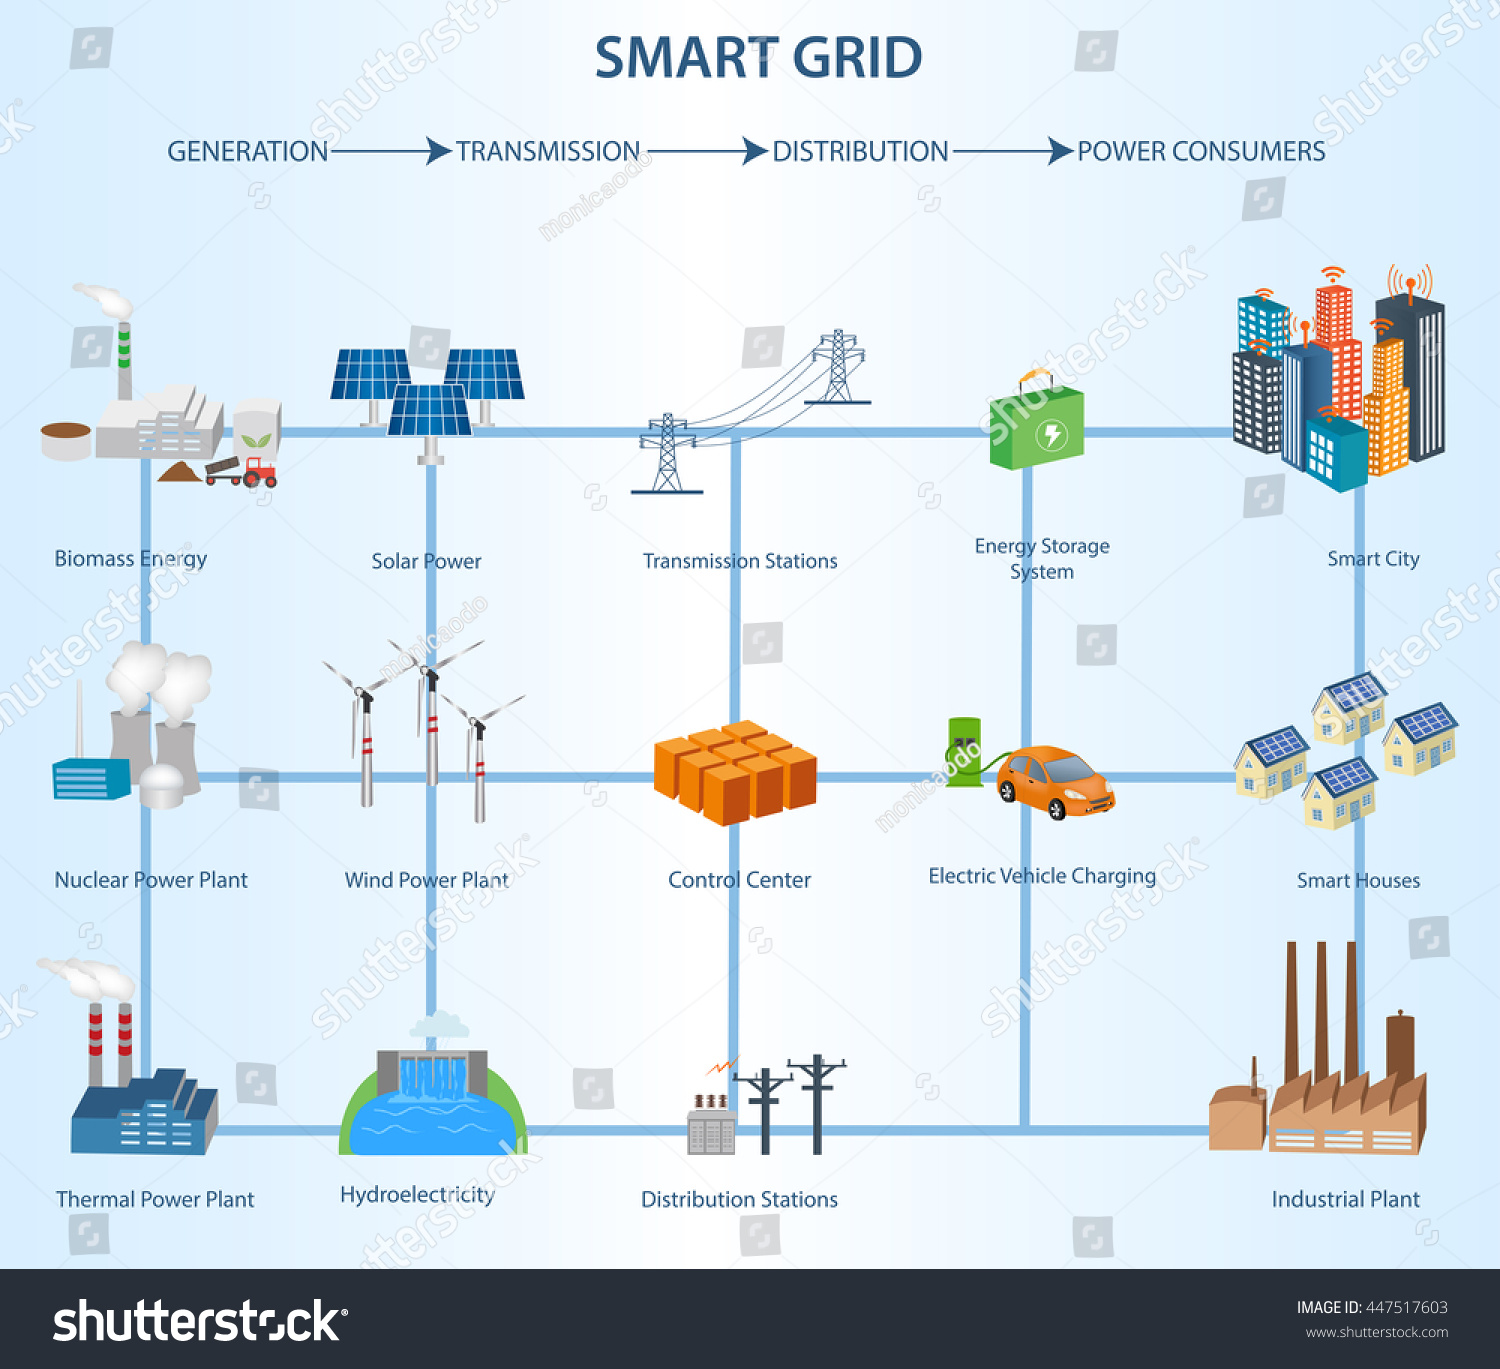 hight resolution of transmission and distribution smart grid structure within the power industry industrial and smart grid devices in